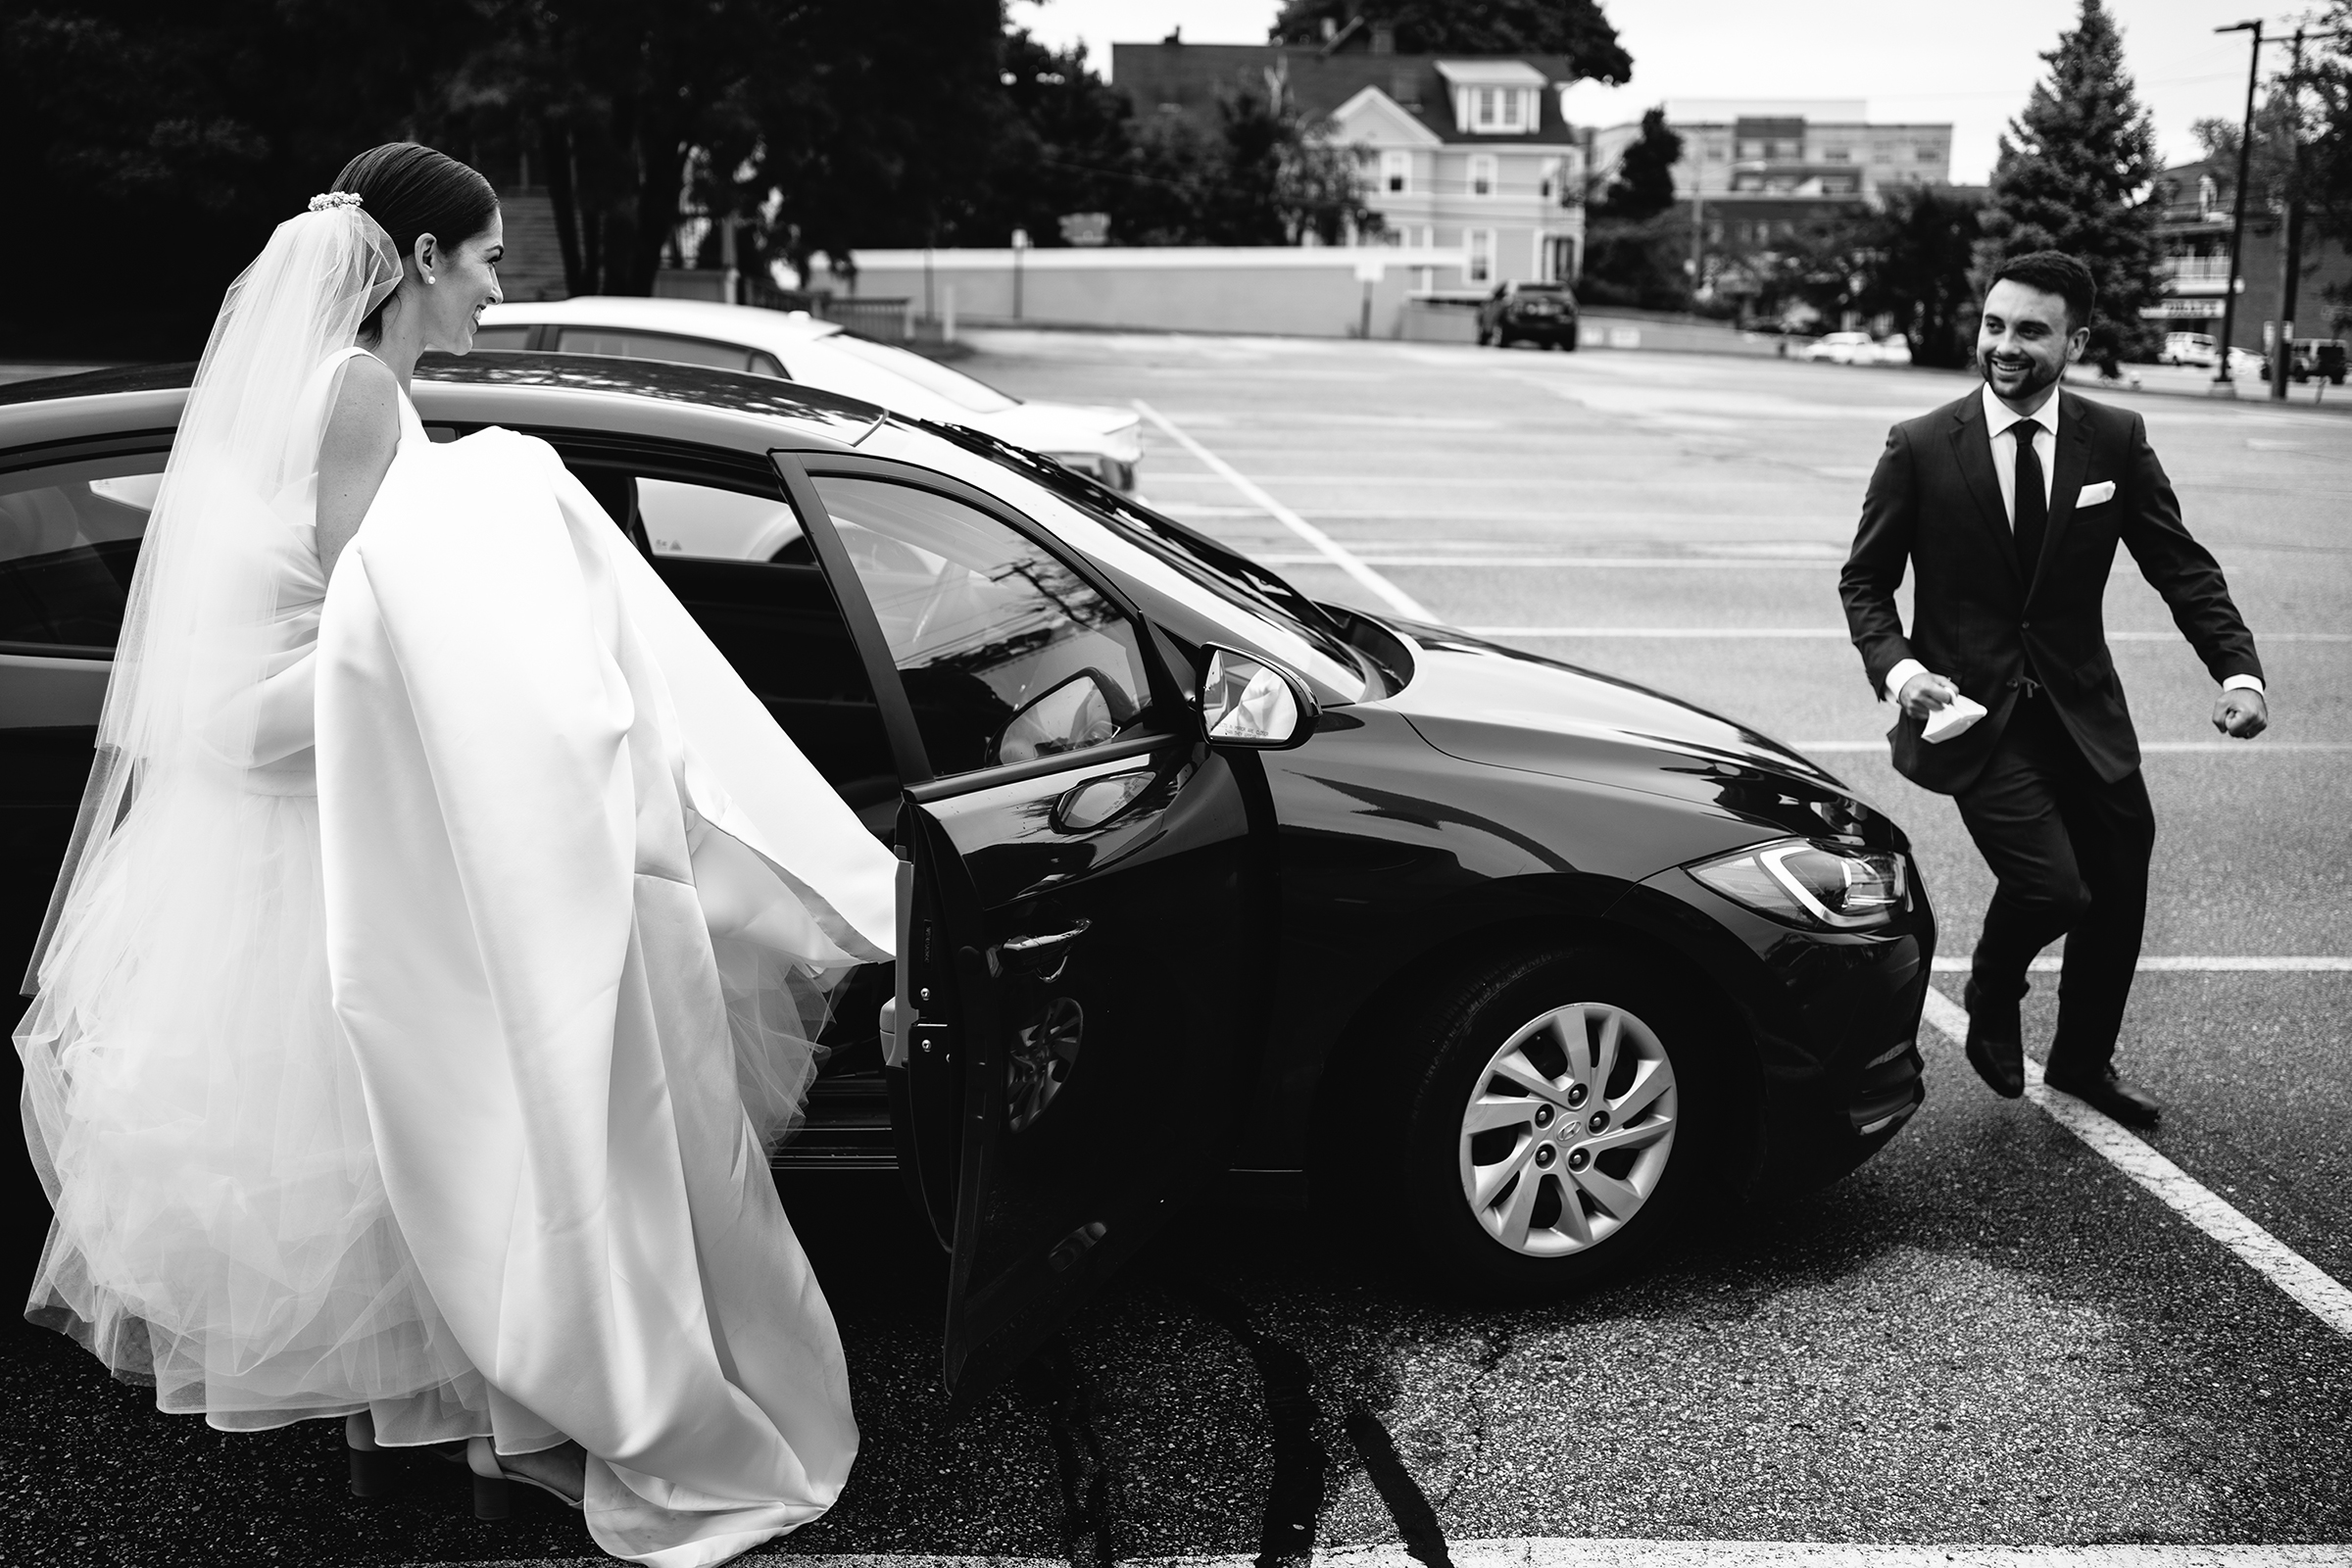 Bride in voluminous gown entering auto - photo by Bradley Hanson Photography